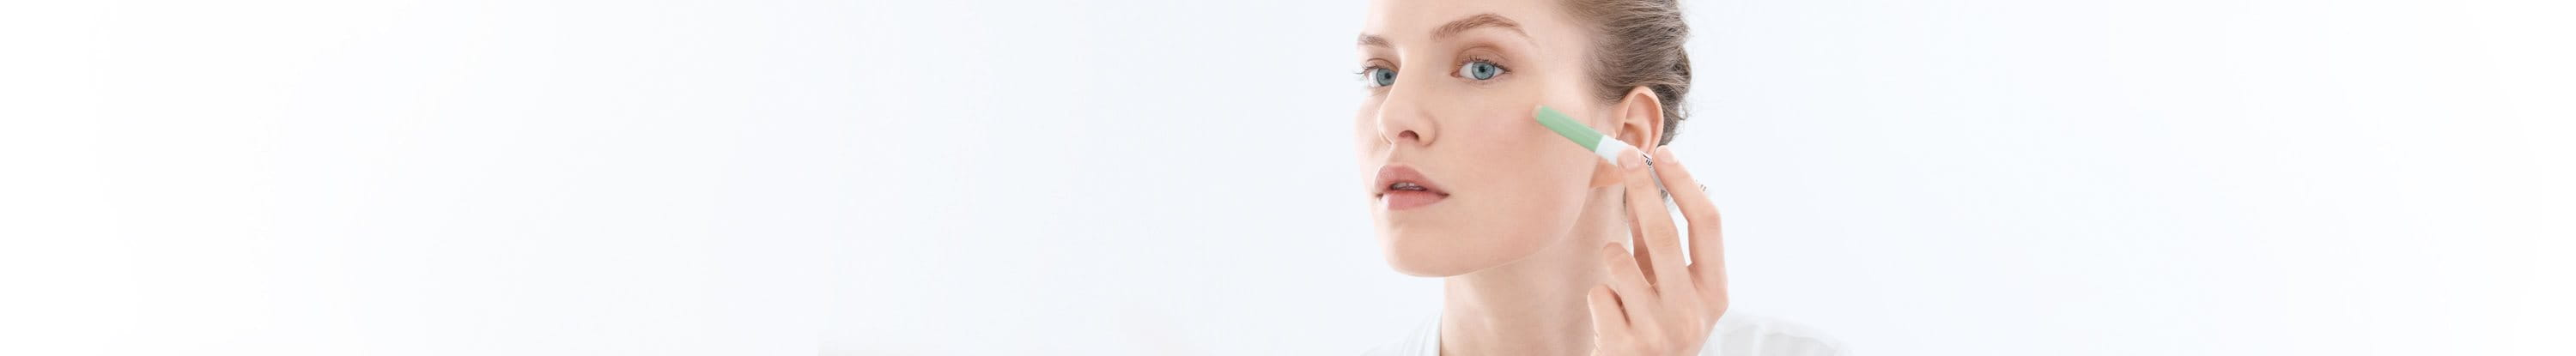 Girl with blemish-prone skin